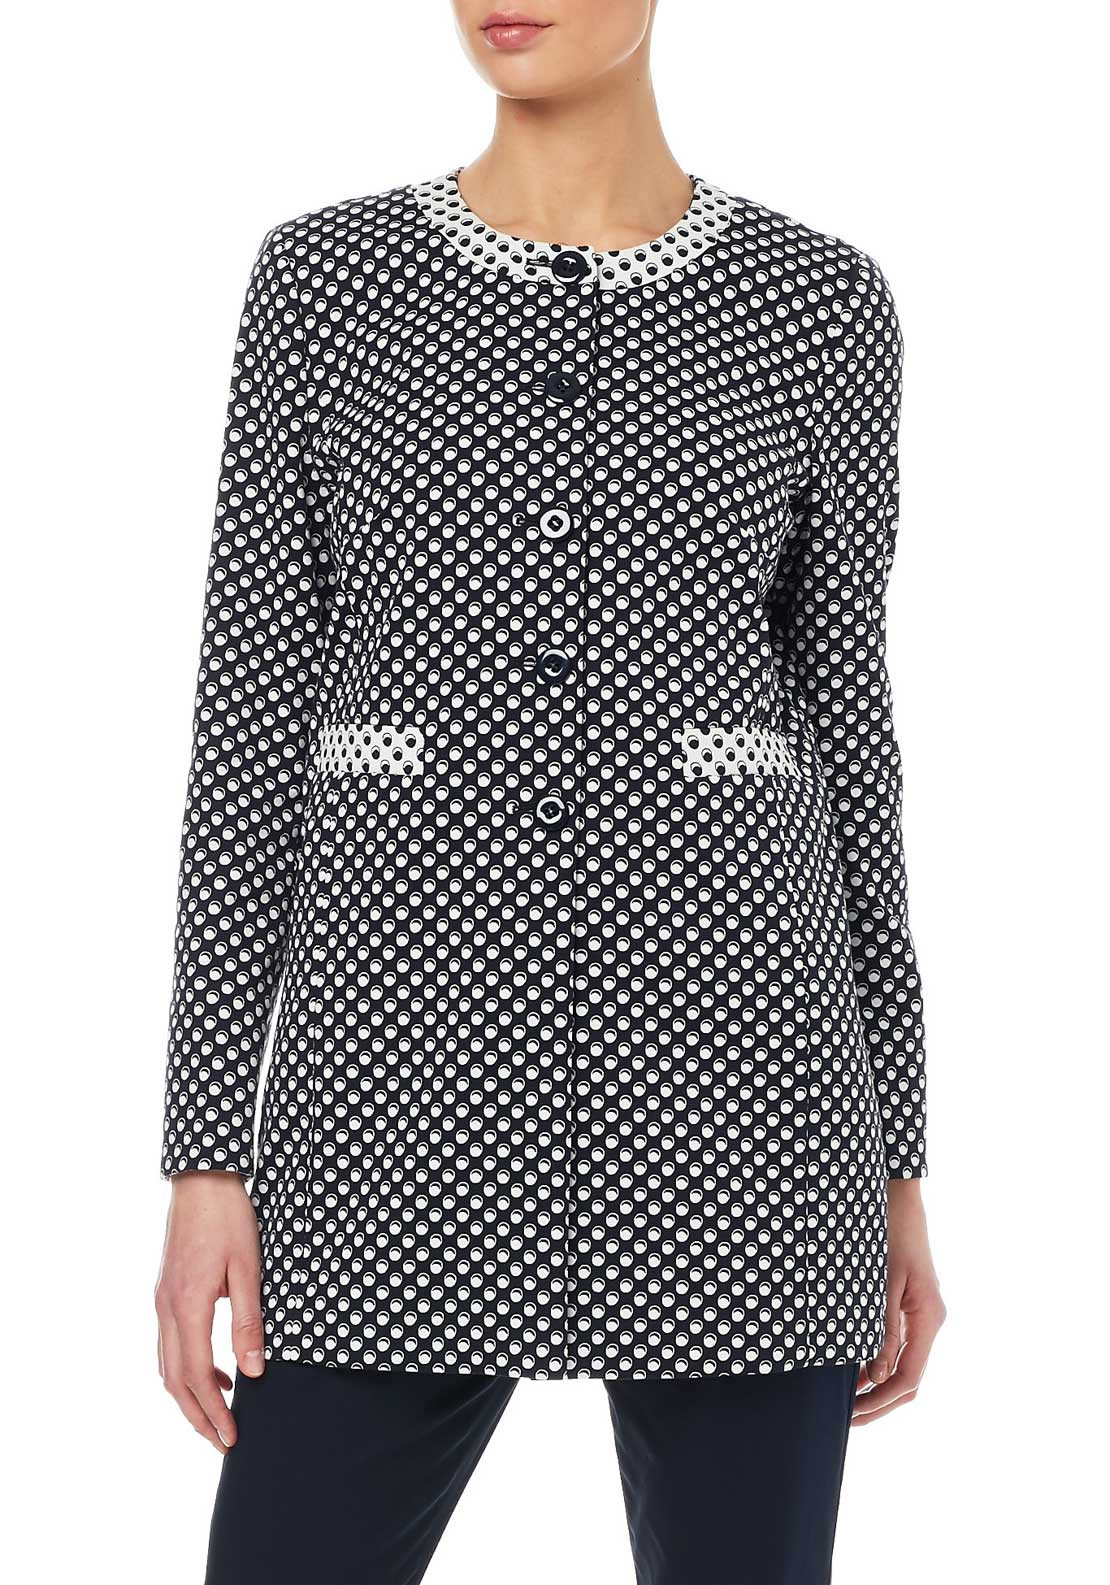 Gerry Weber Circle Print Jacket, Black & White